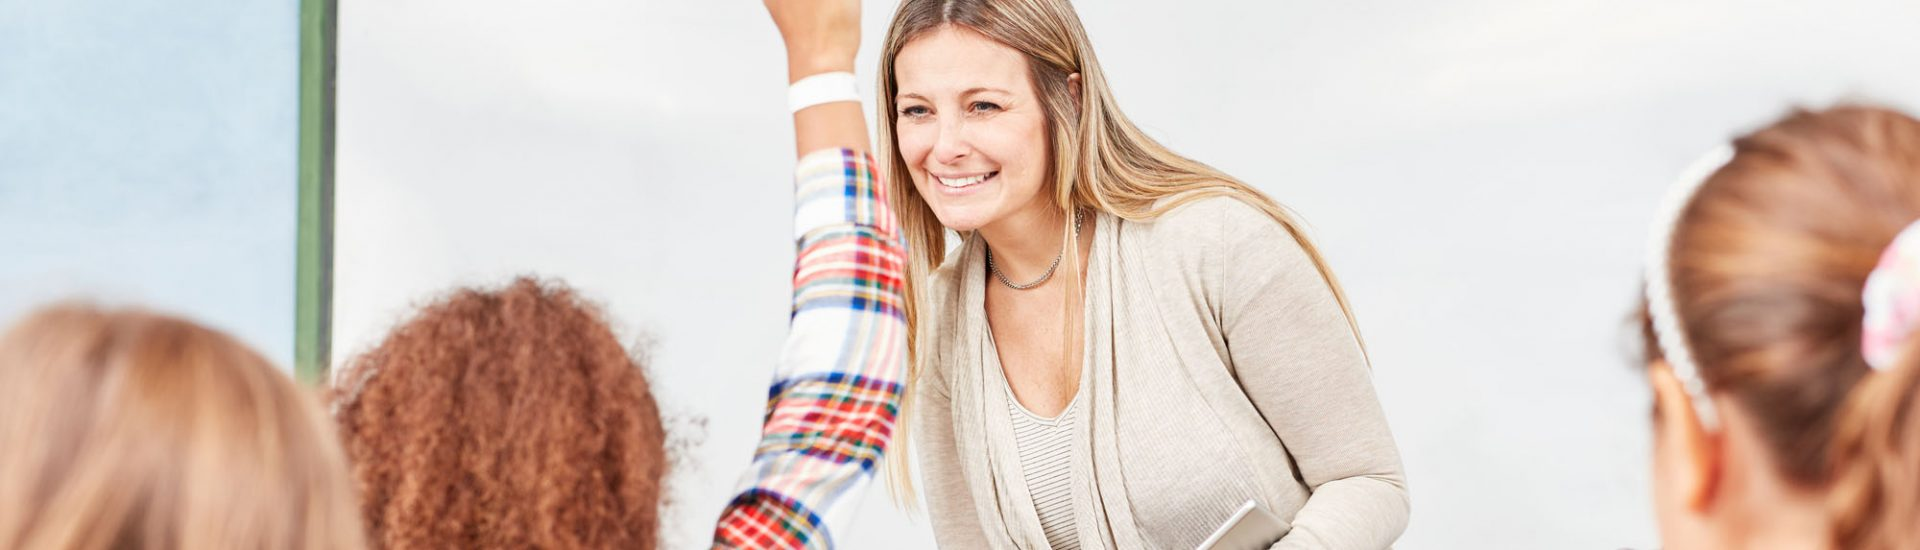 McNeill Schulranzen: Top 3 Modelle - Made in Germany